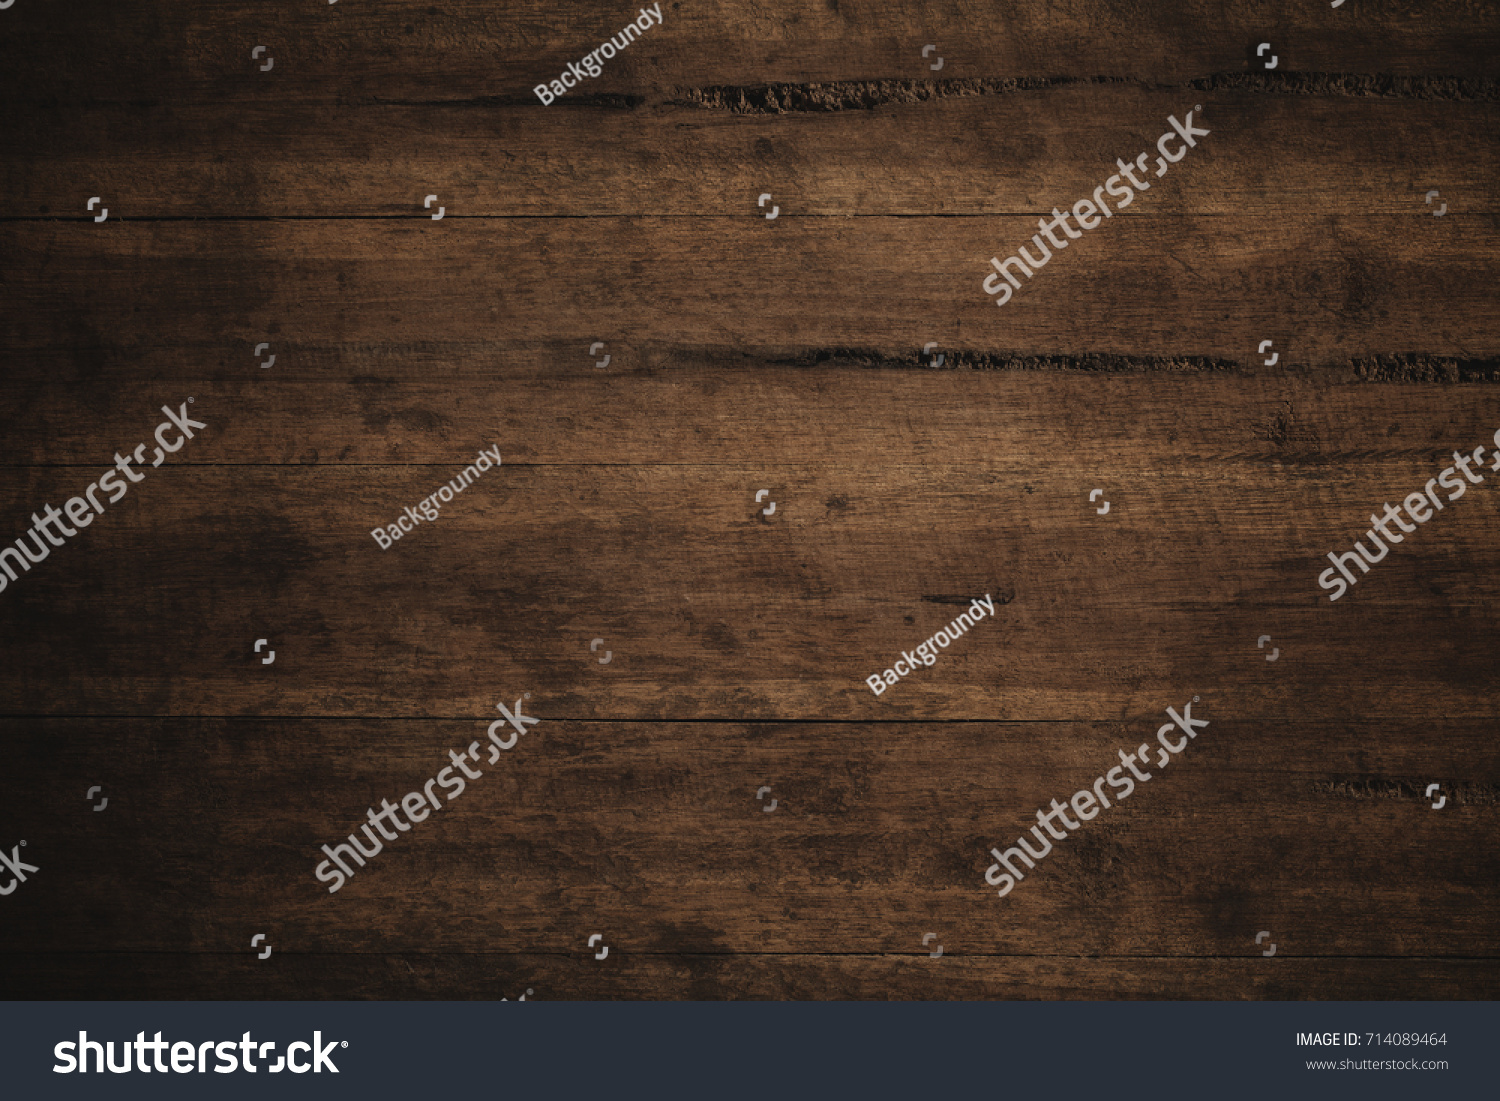 Old grunge dark textured wooden background,The surface of the old brown wood texture #714089464